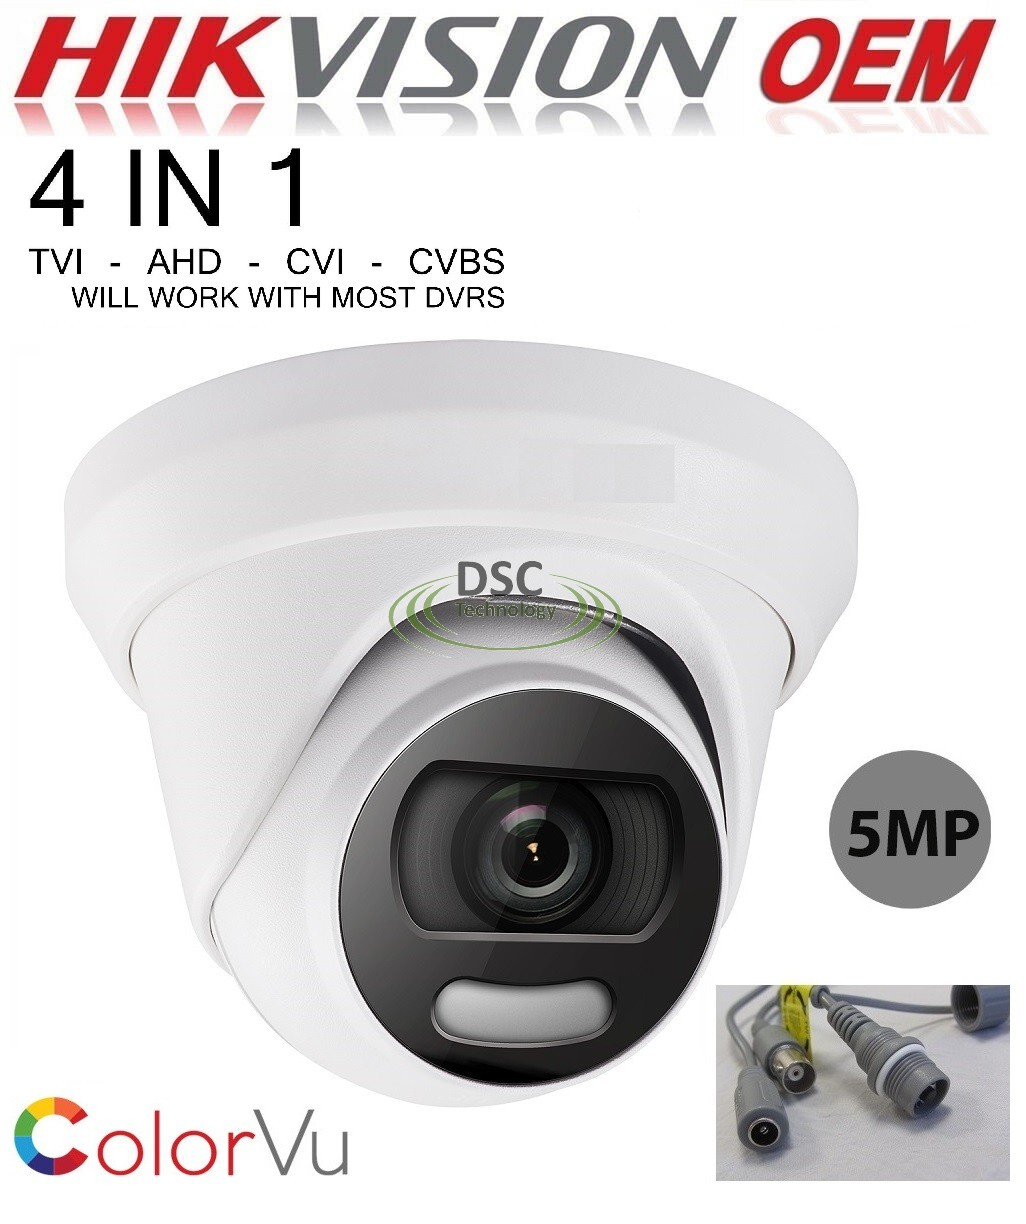 5MP ColorVu Fixed Turret Camera (switchable TVI/AHD/CVI/CVBS)